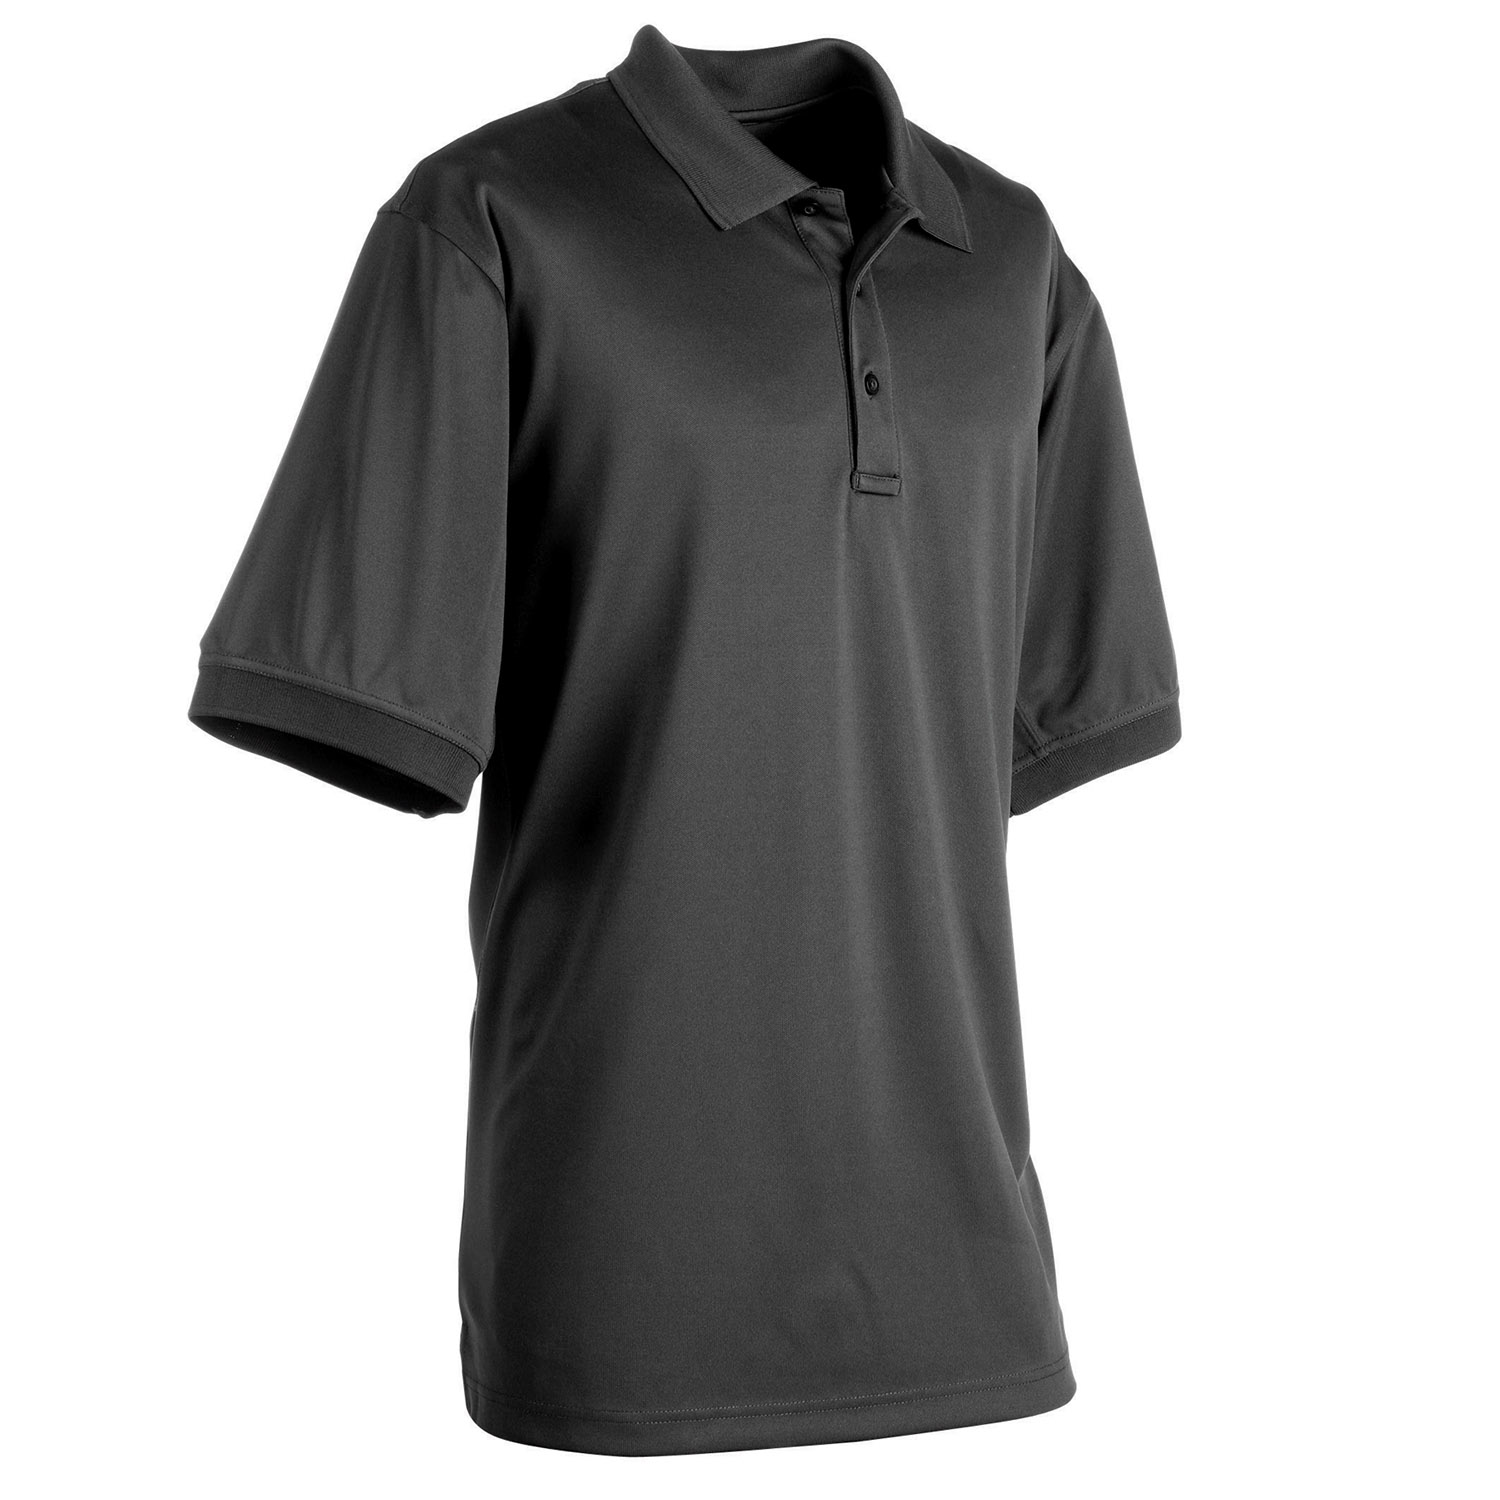 cb3dc2c25 Galls G-Tac Tactical Performance Polo